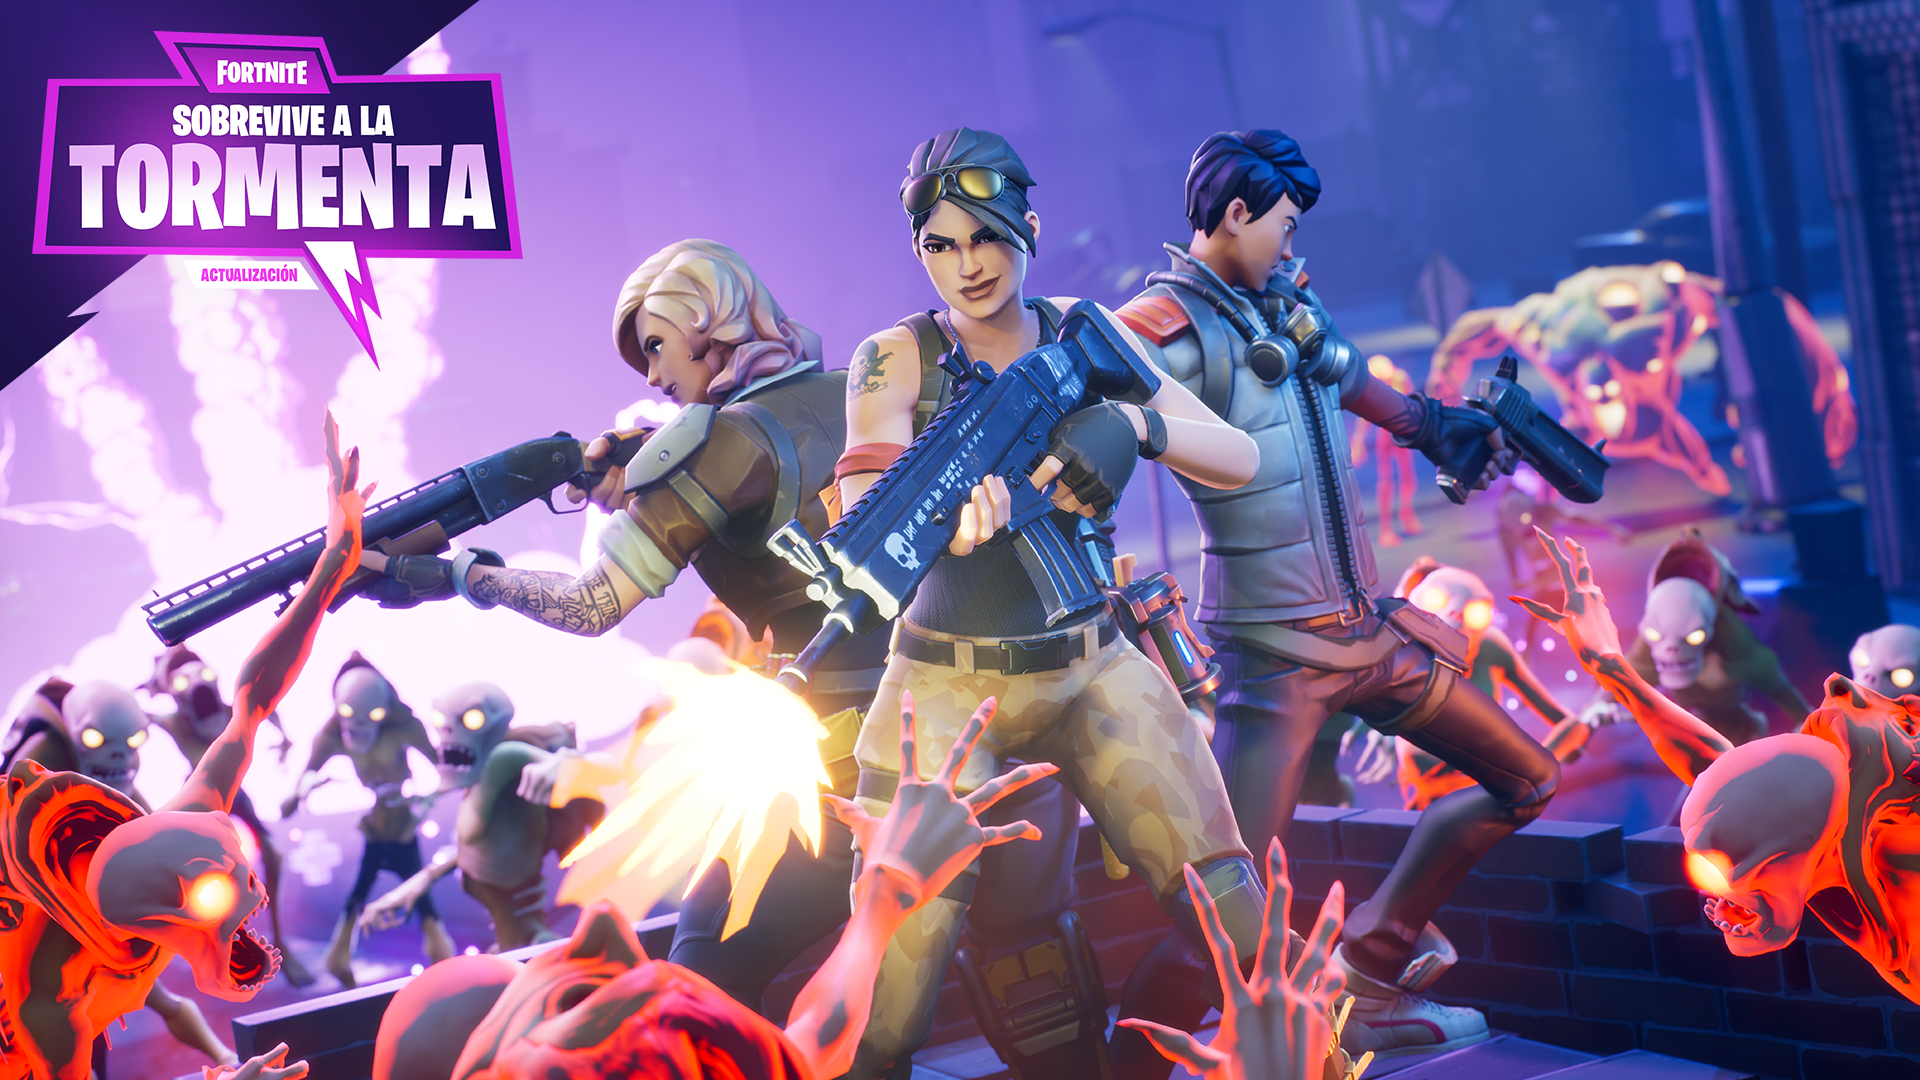 Fortnite%2Fblog%2Fsurvive-the-storm---release-notes%2FES_Storm-Zone-1920x1080-43a1e0a4f106c648d69f6d7ba6e72cf971c419b4